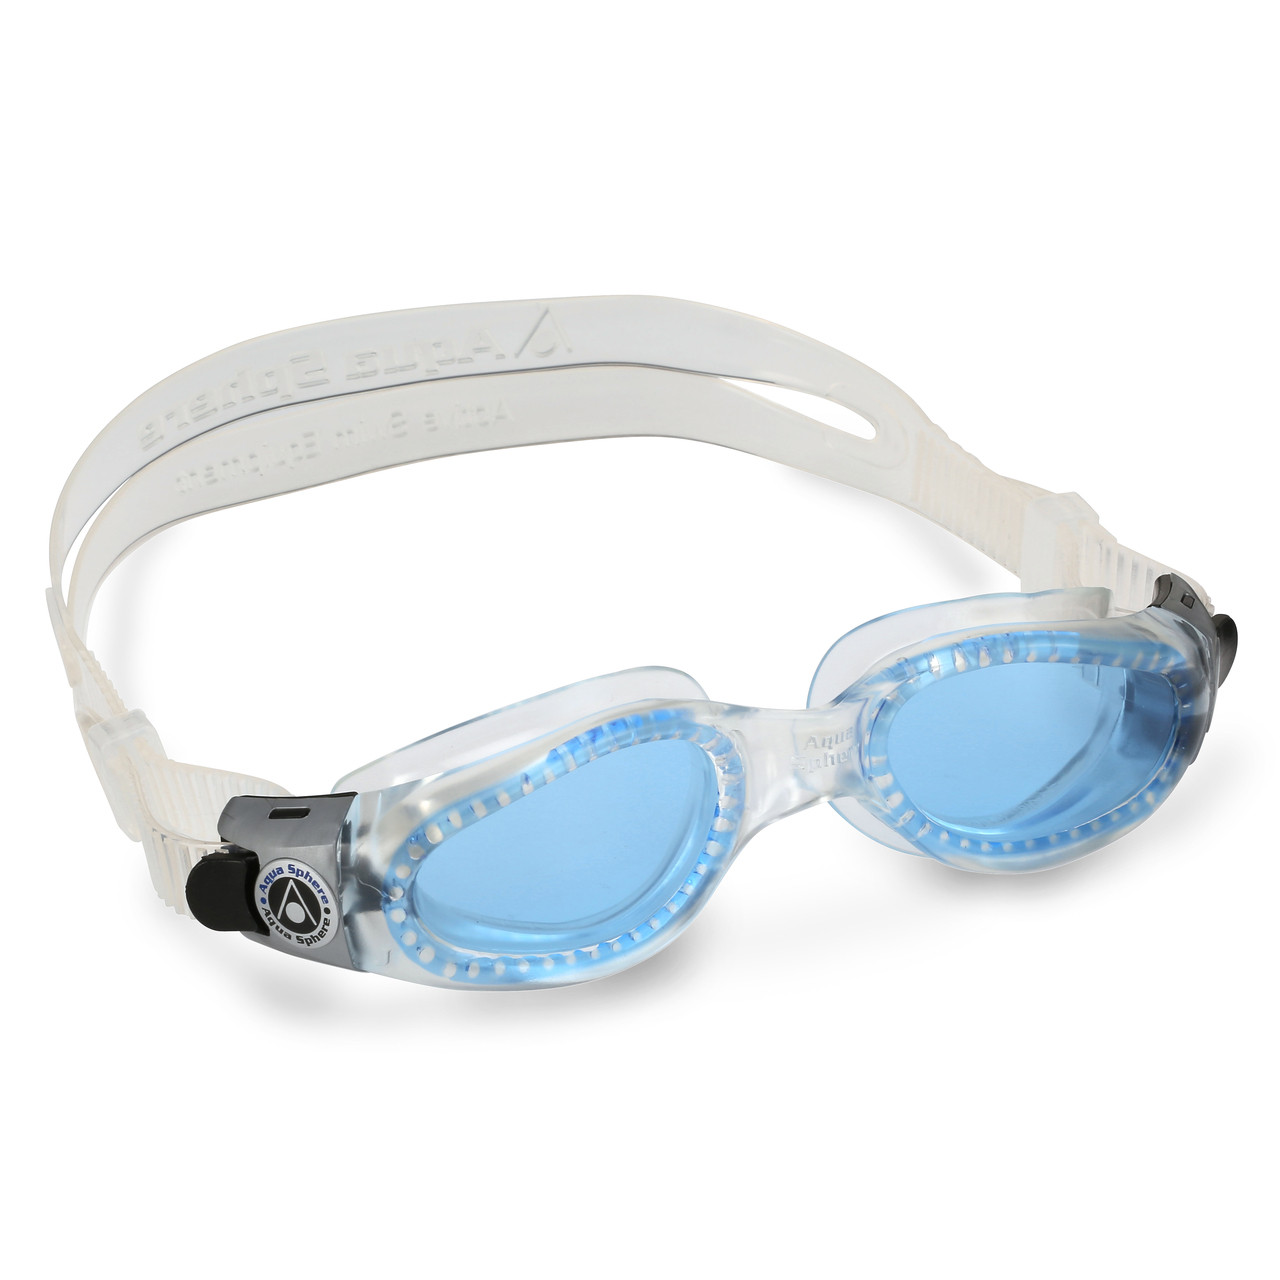 offer discounts watch how to buy Buy Aqua Sphere Kaiman Swim Goggles With Blue Lenses For ...